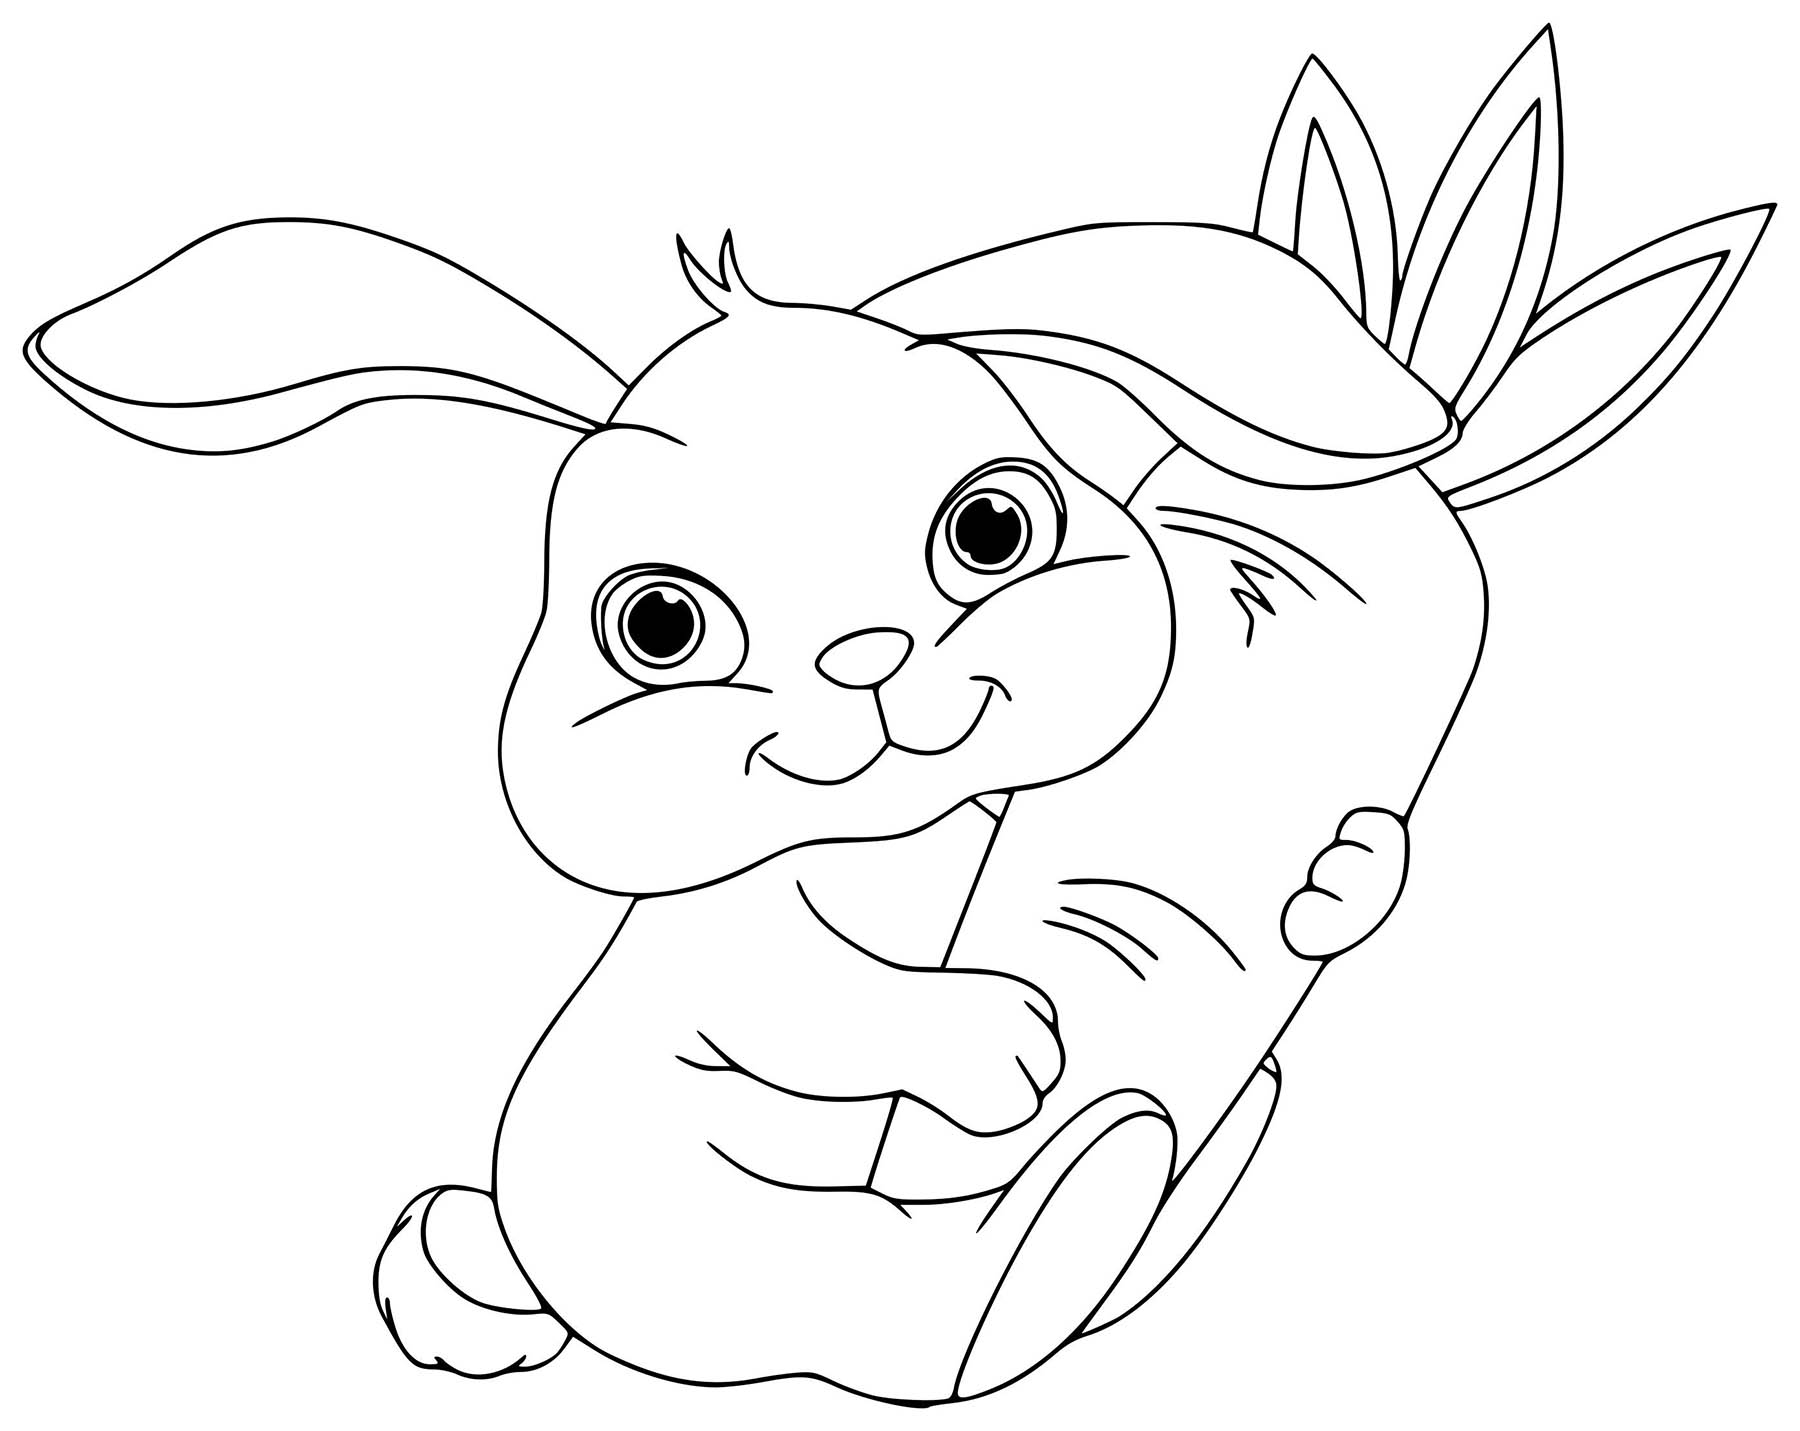 rabbit color pages rabbit free to color for children rabbit kids coloring pages pages color rabbit